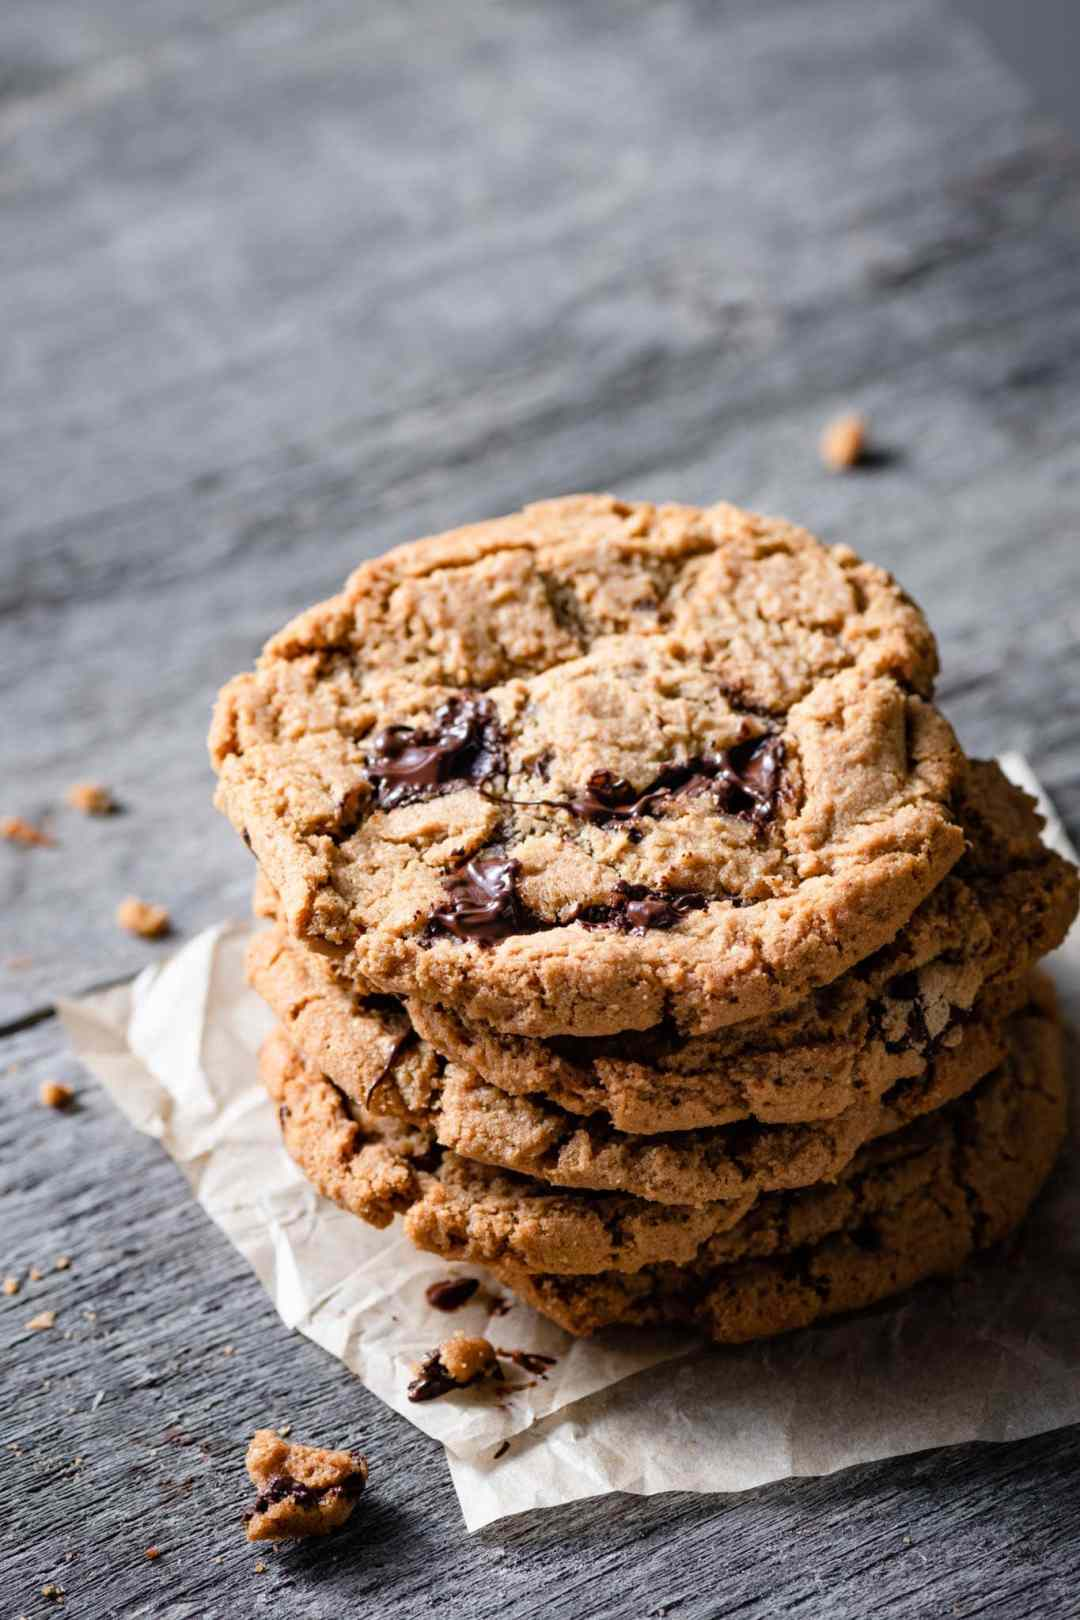 Stack of peanut butter chocolate chip cookies.